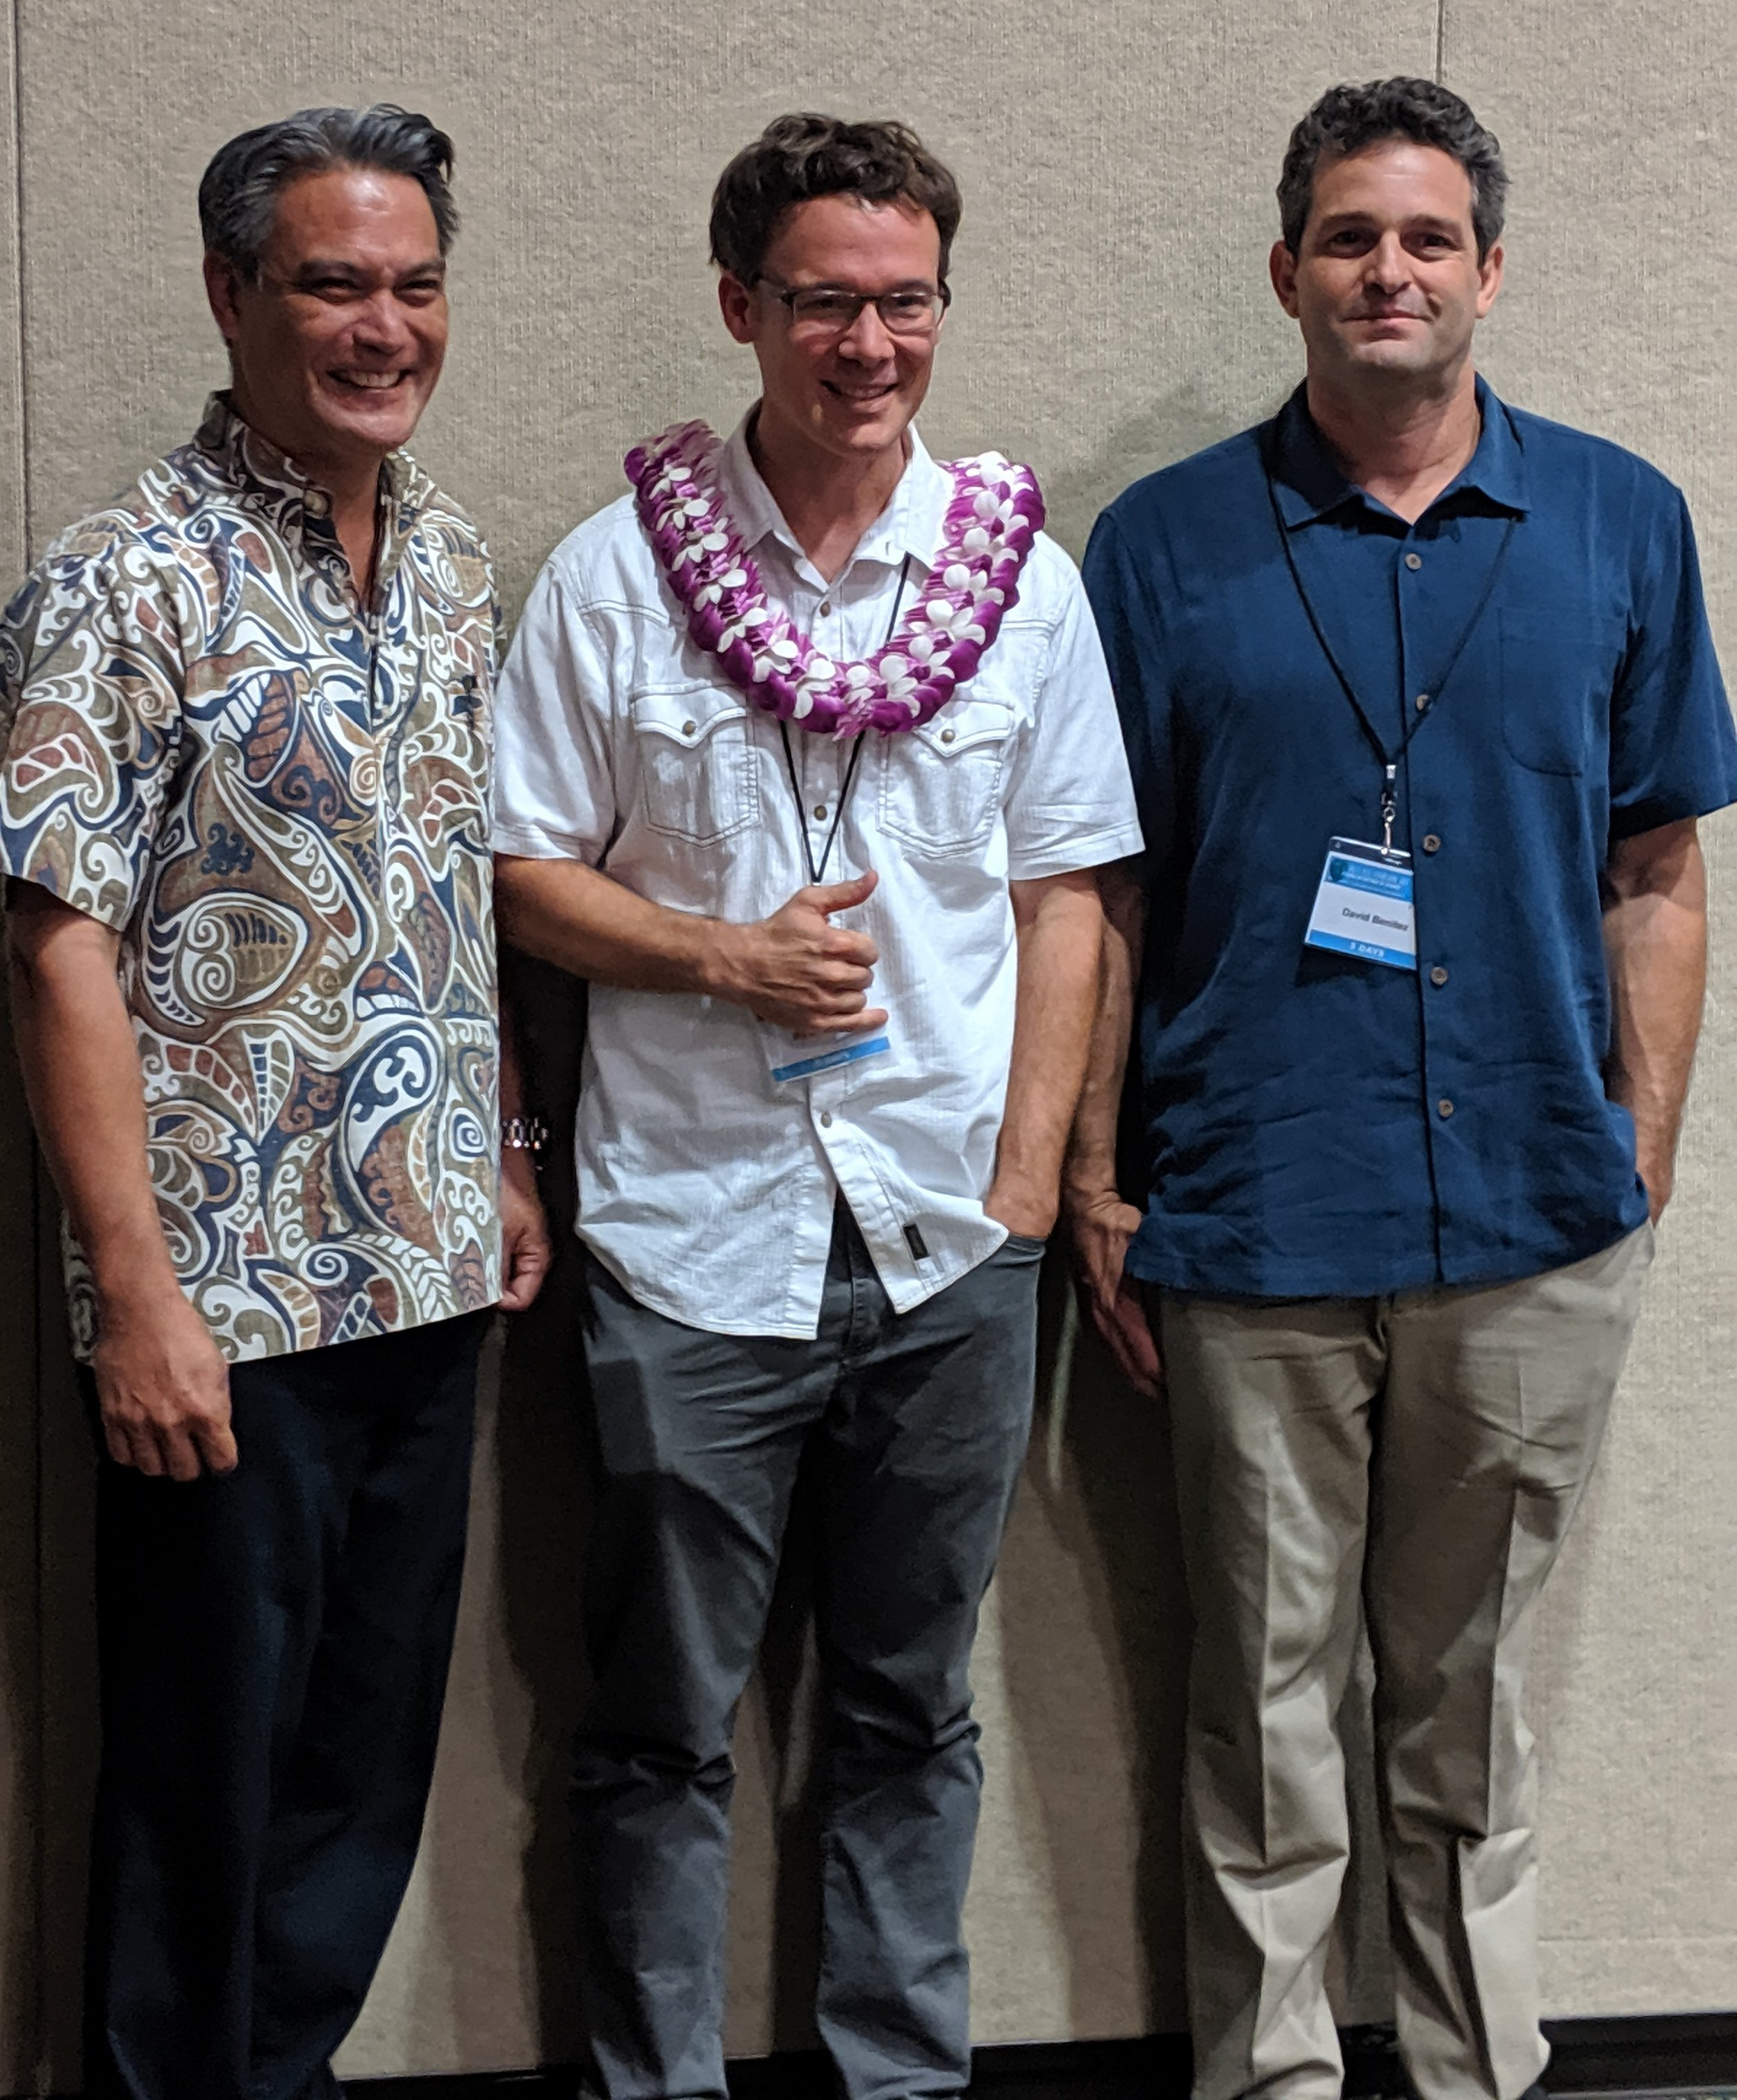 COURTESY DANNY DUDA / UH HILO  Ryan Perroy, an associate professor at UH Hilo, is the winner of the Ohia Challenge. Perroy, center, is standing next to Stanton Enomoto of the Department of the Interior's Office of Native Hawaiian Relations, left, and Hawai'i Volcanoes National Park ecologist David Benitez.